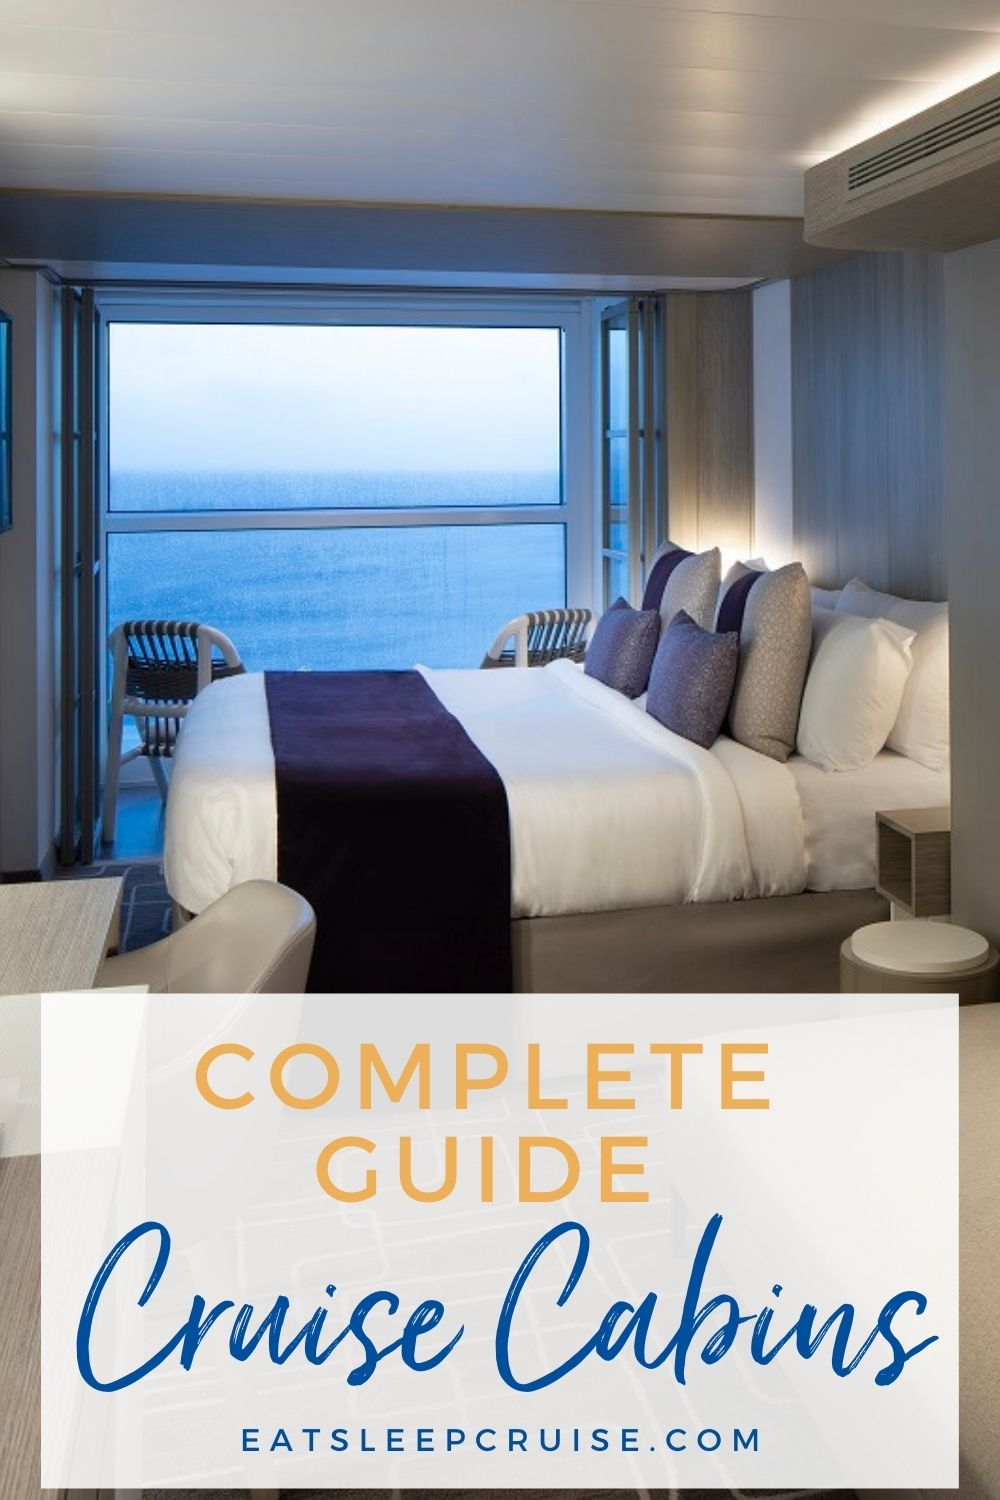 Complete Guide to Cruise Cabins